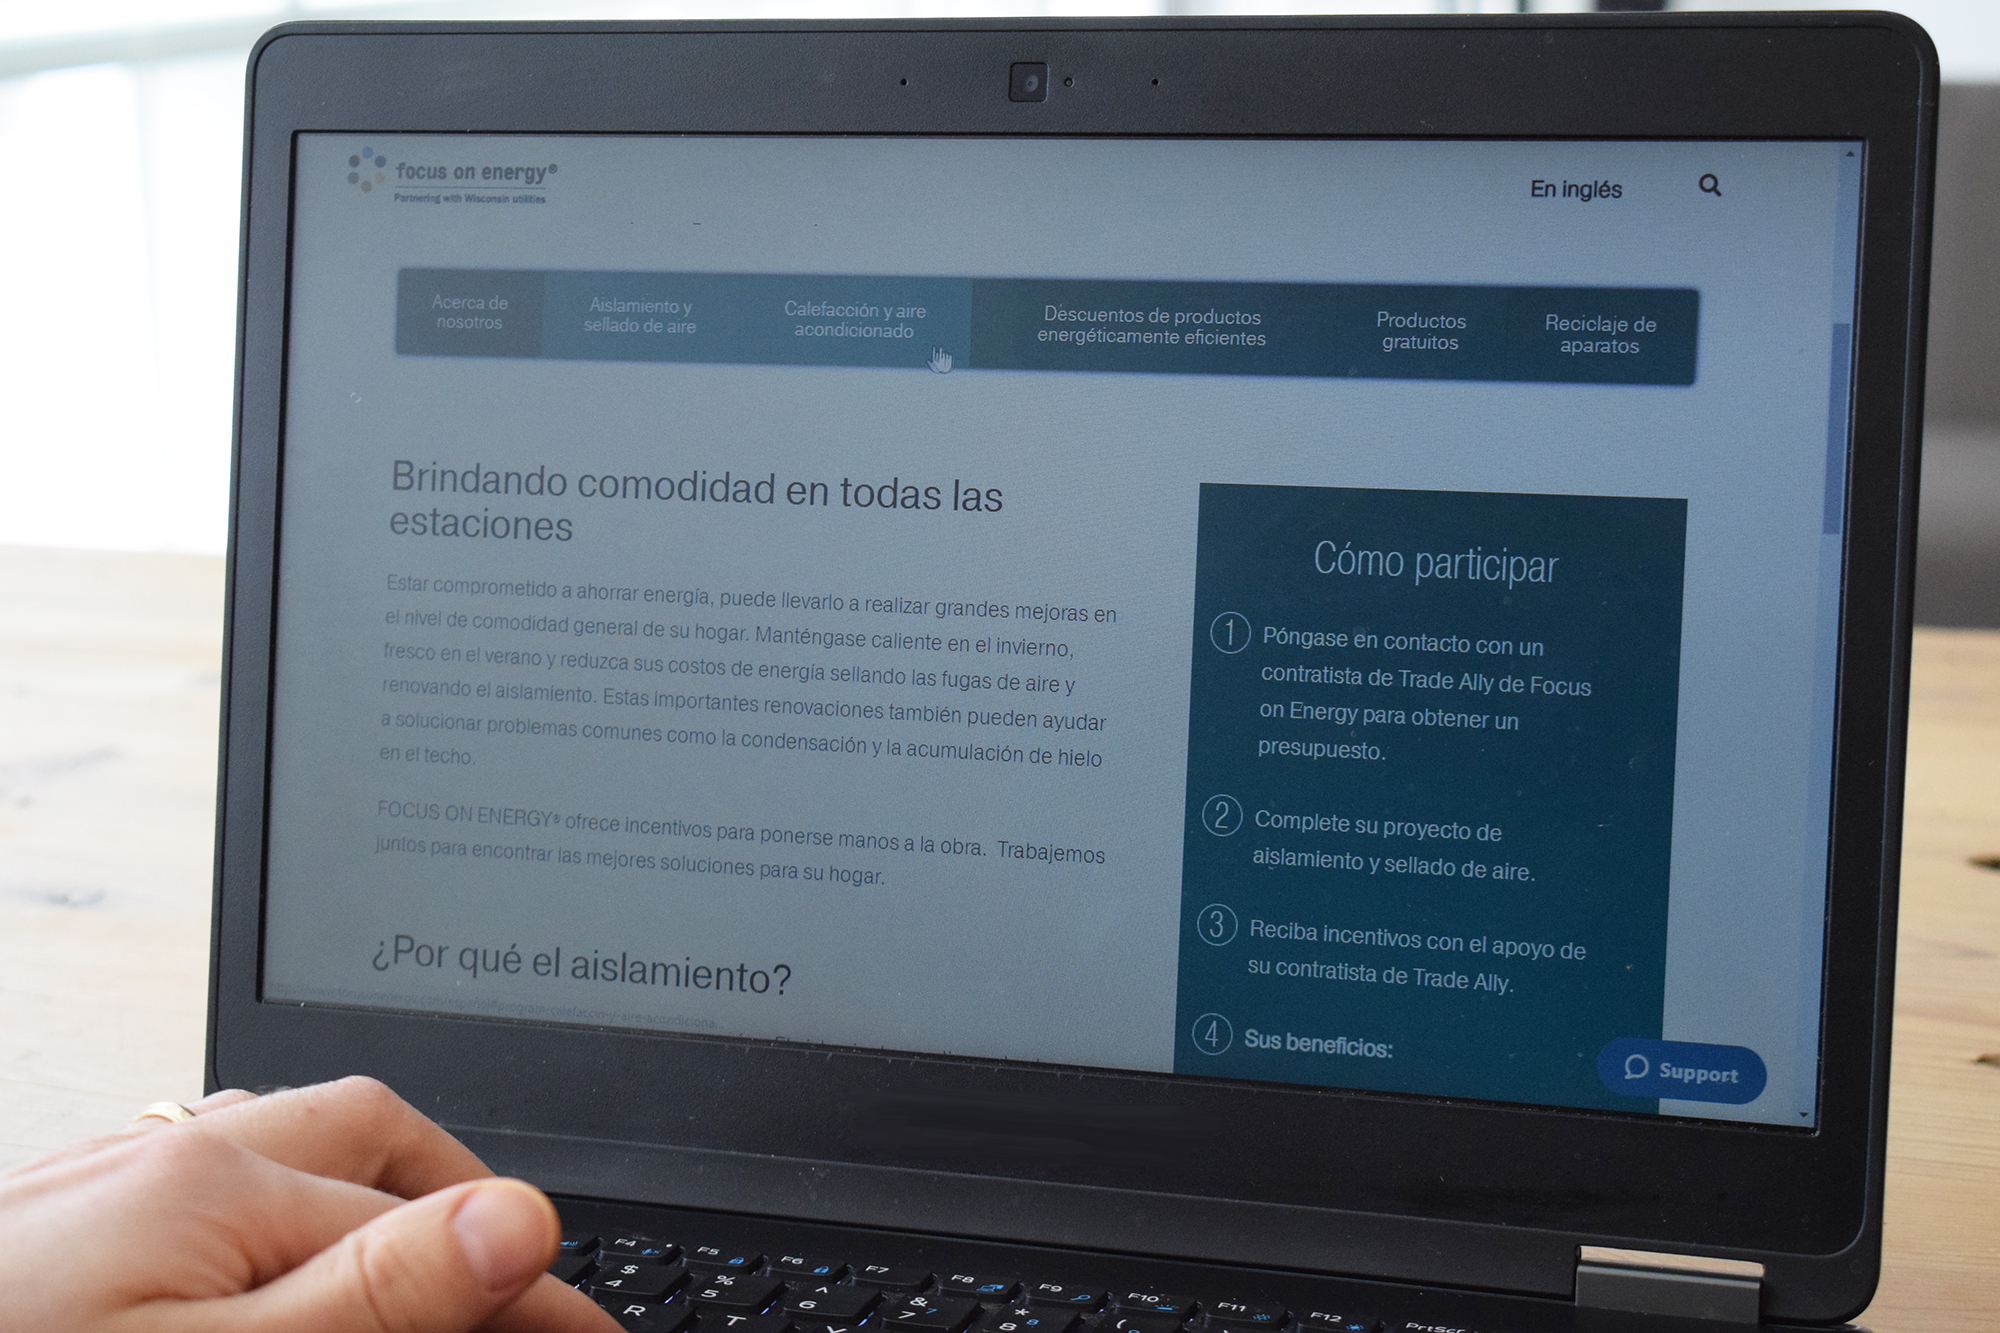 Image of a laptop in use with the focusonenergy.com/español page.